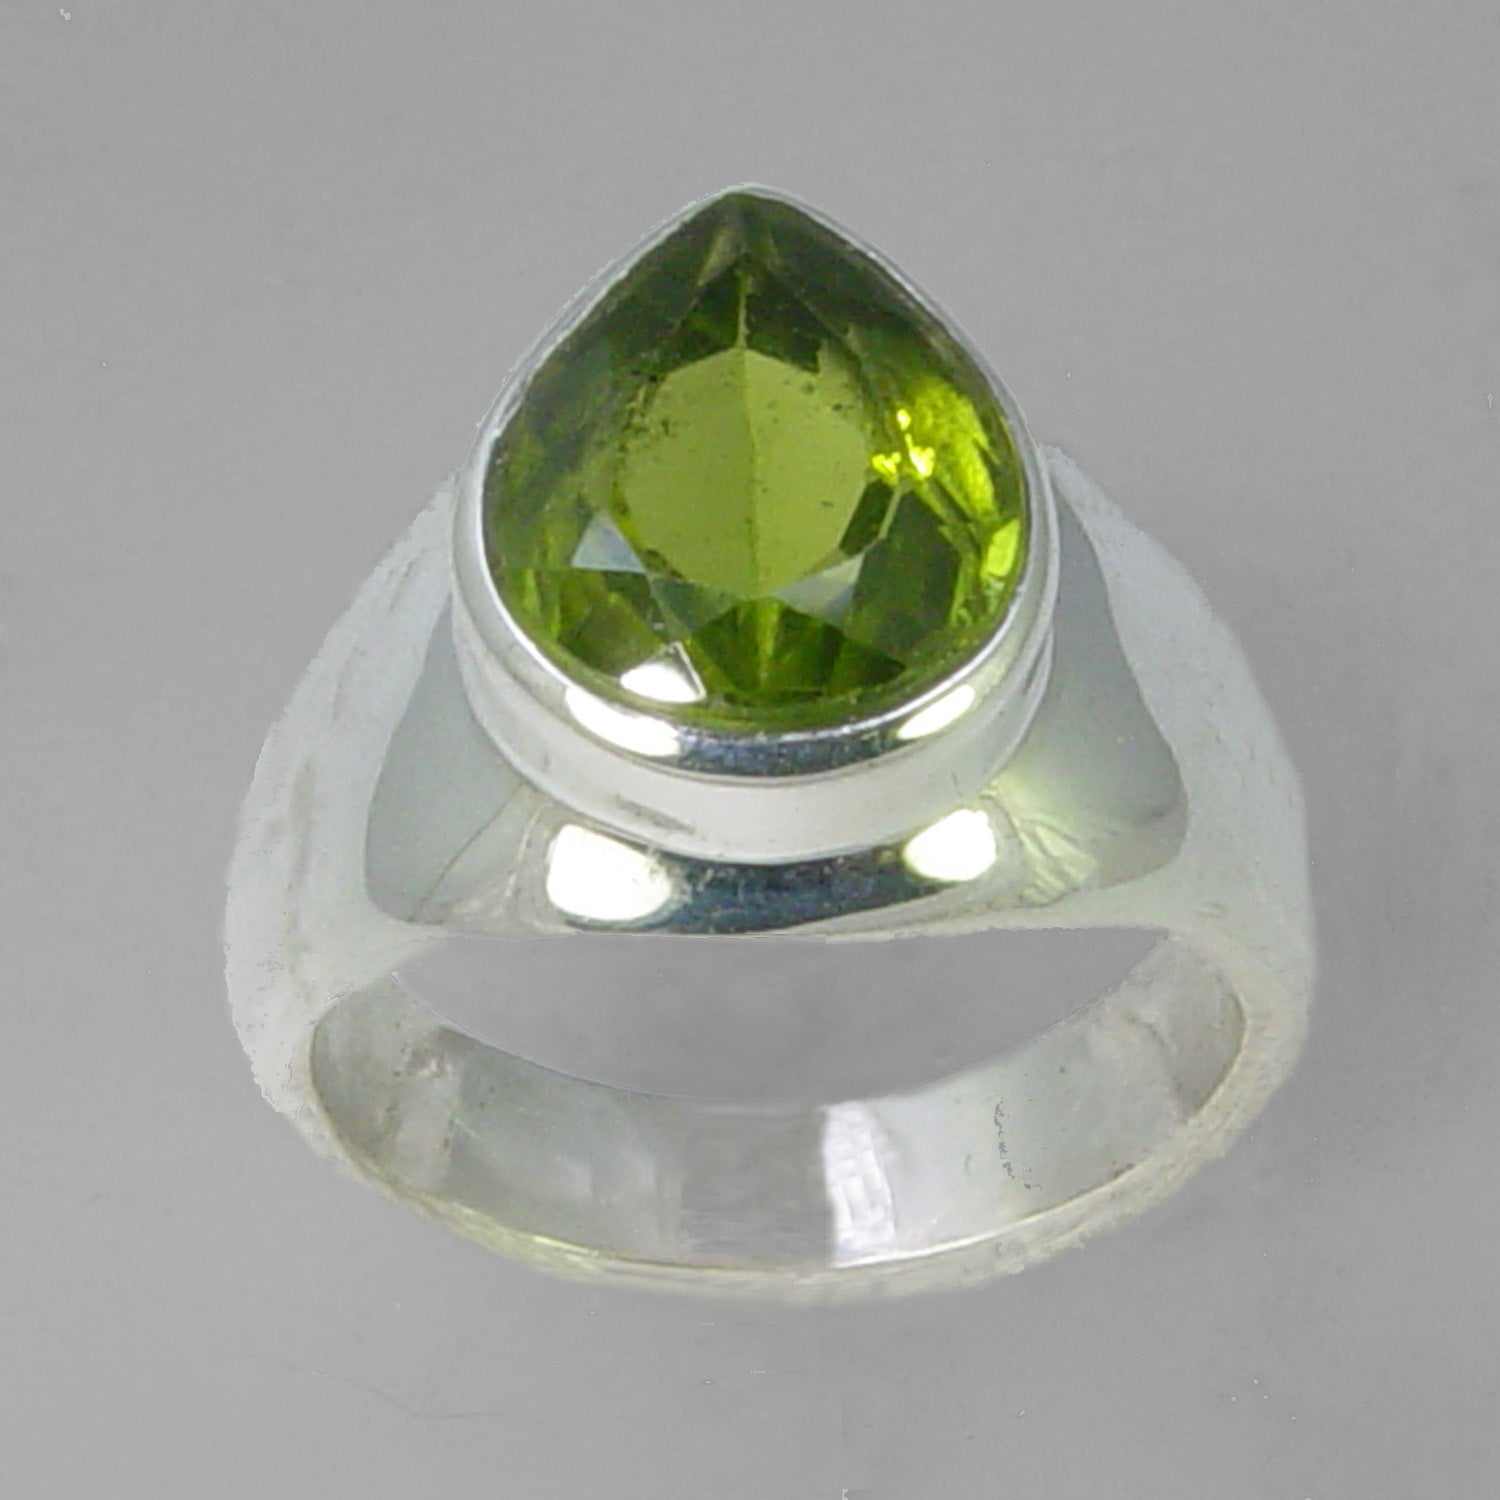 Peridot 5.8 ct Pear Bezel Set Sterling Silver Ring, Size 8.5